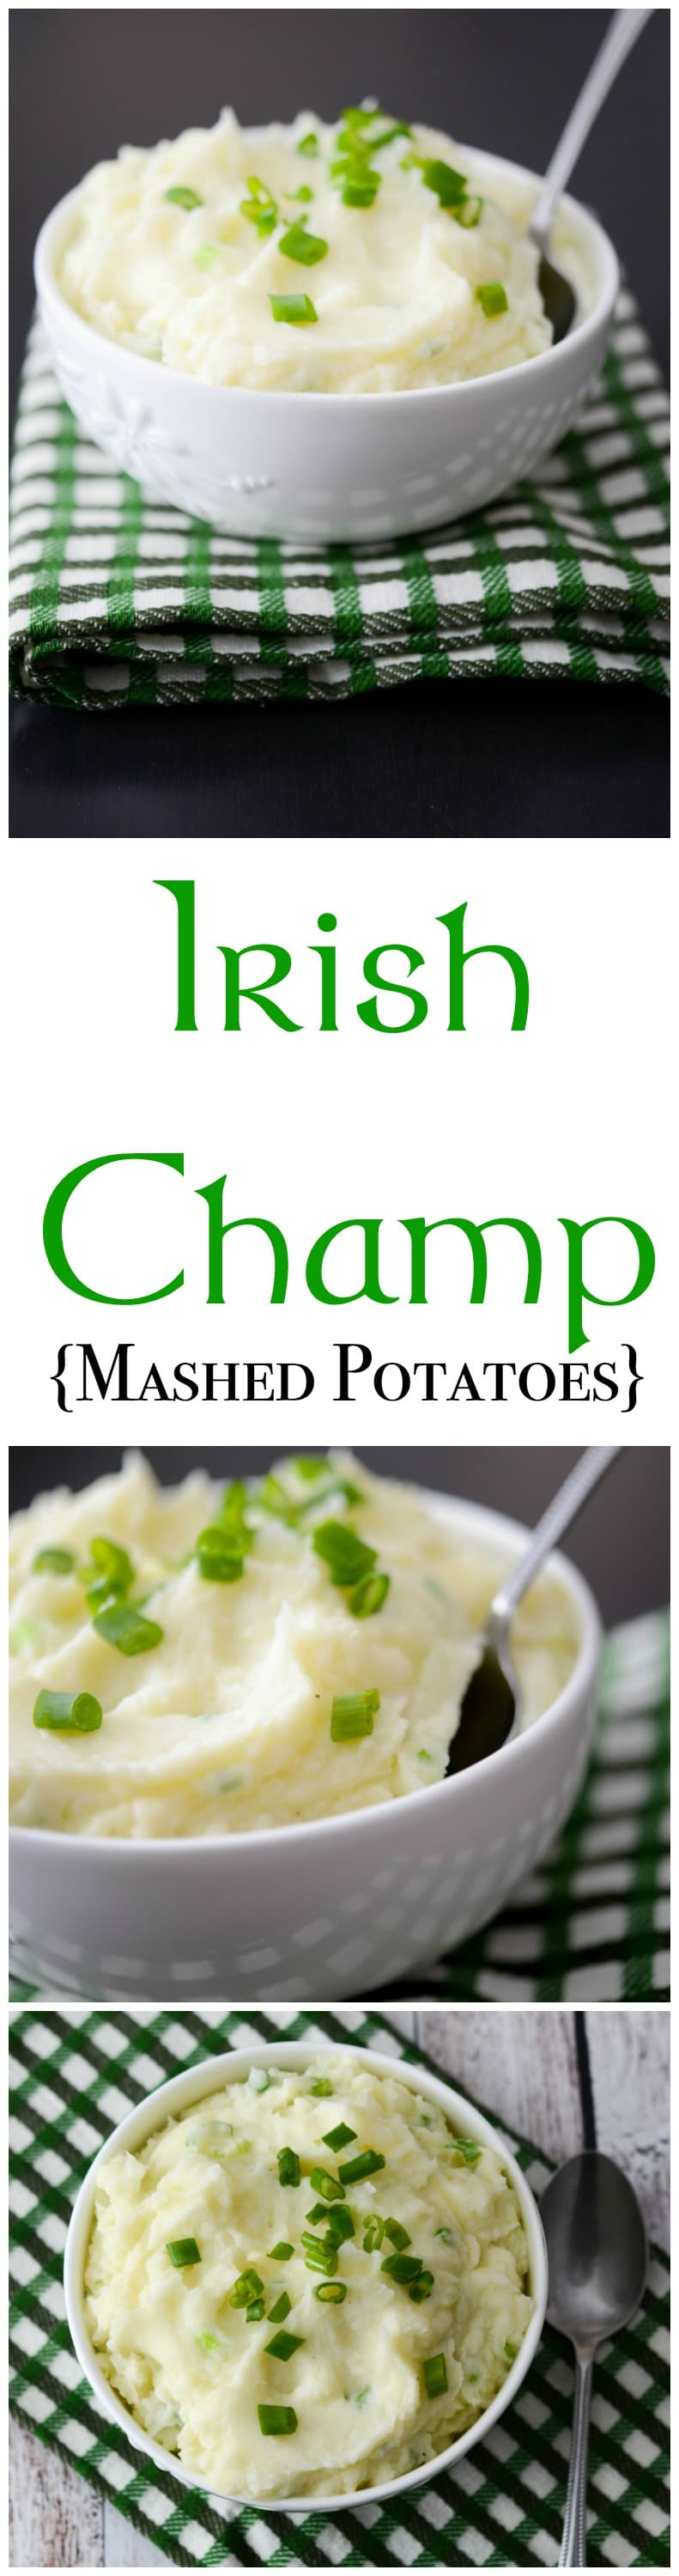 Even if you're not of Irish decent, this recipe for Irish Champ made with russet potatoes, scallions, butter and milk is tasty and simple to make. #potatoes #irish #stpatricksday #mashedpotatoes #sidedish